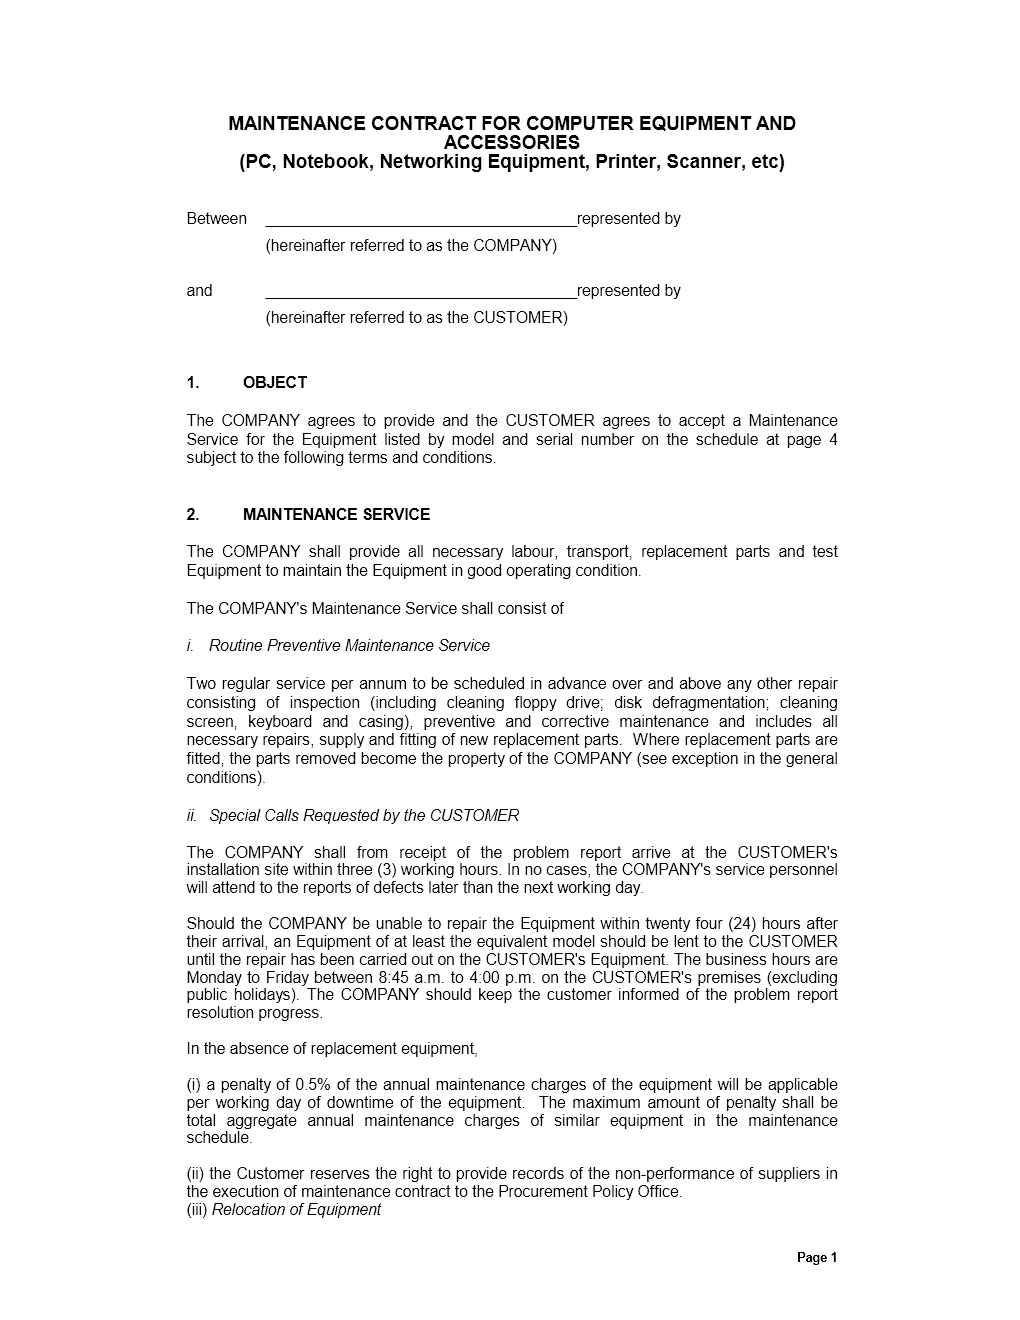 doc575709 sample maintenance contract maintenance contract sample maintenance contract. Resume Example. Resume CV Cover Letter